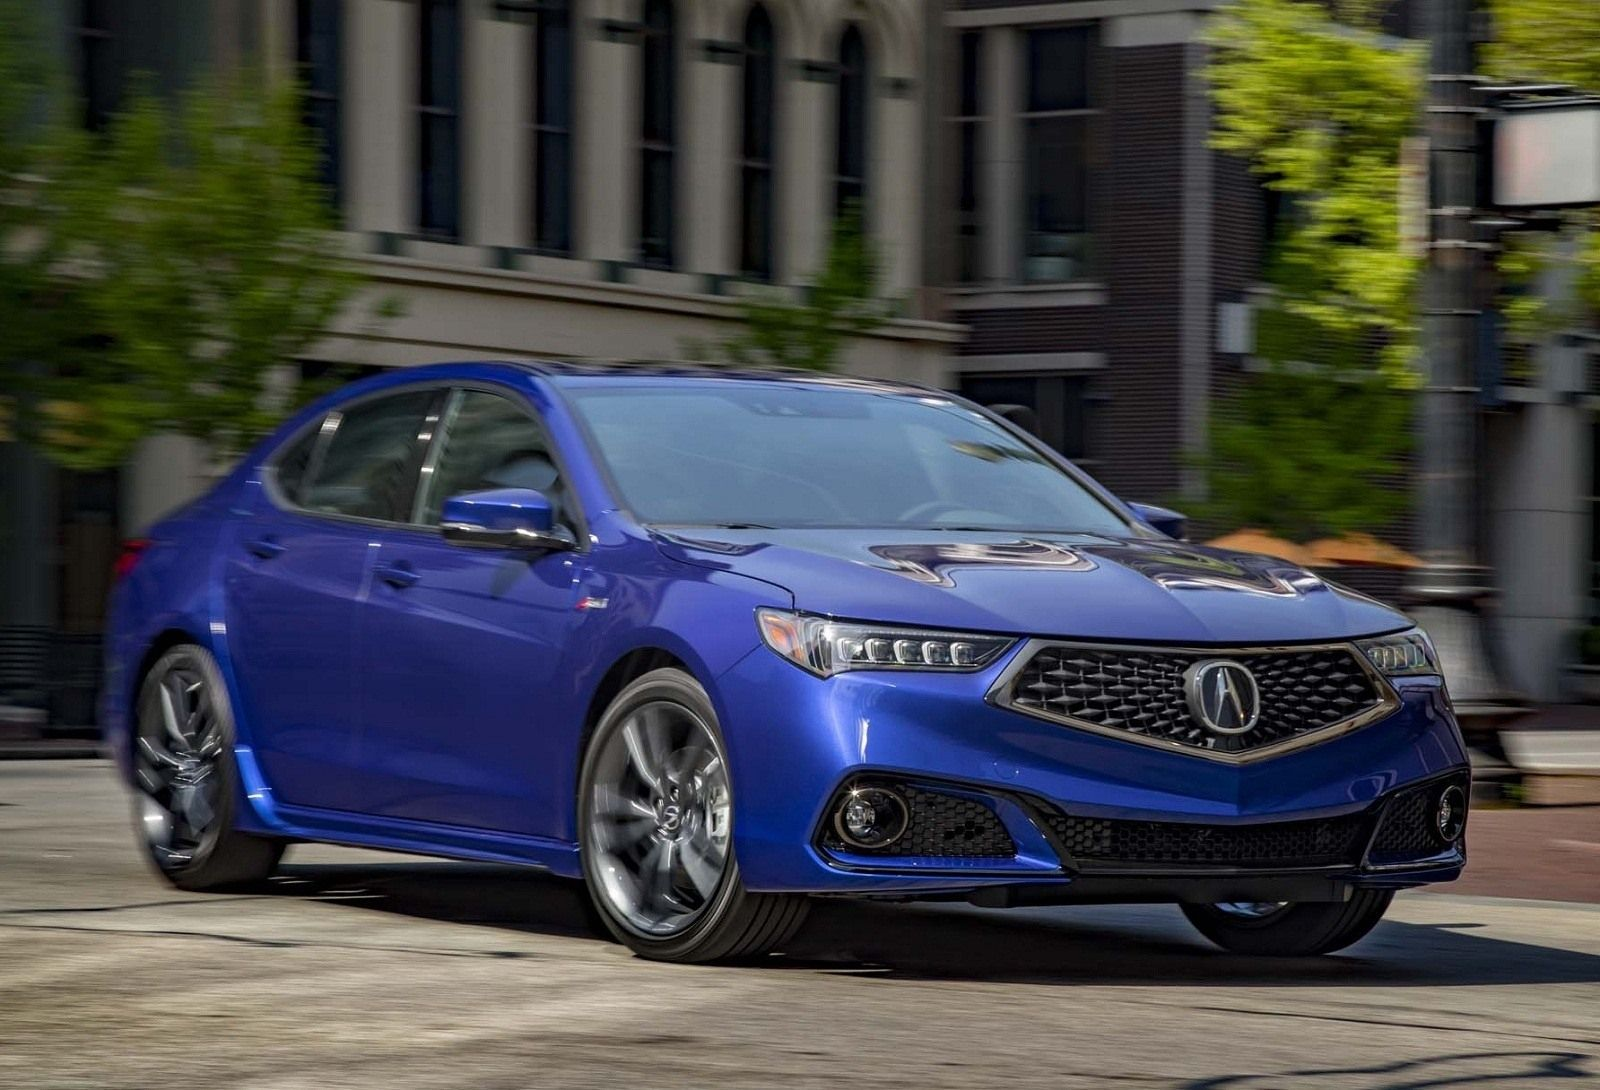 2019 Ilx Specs Price Car Review 2018 Acura tlx, Acura